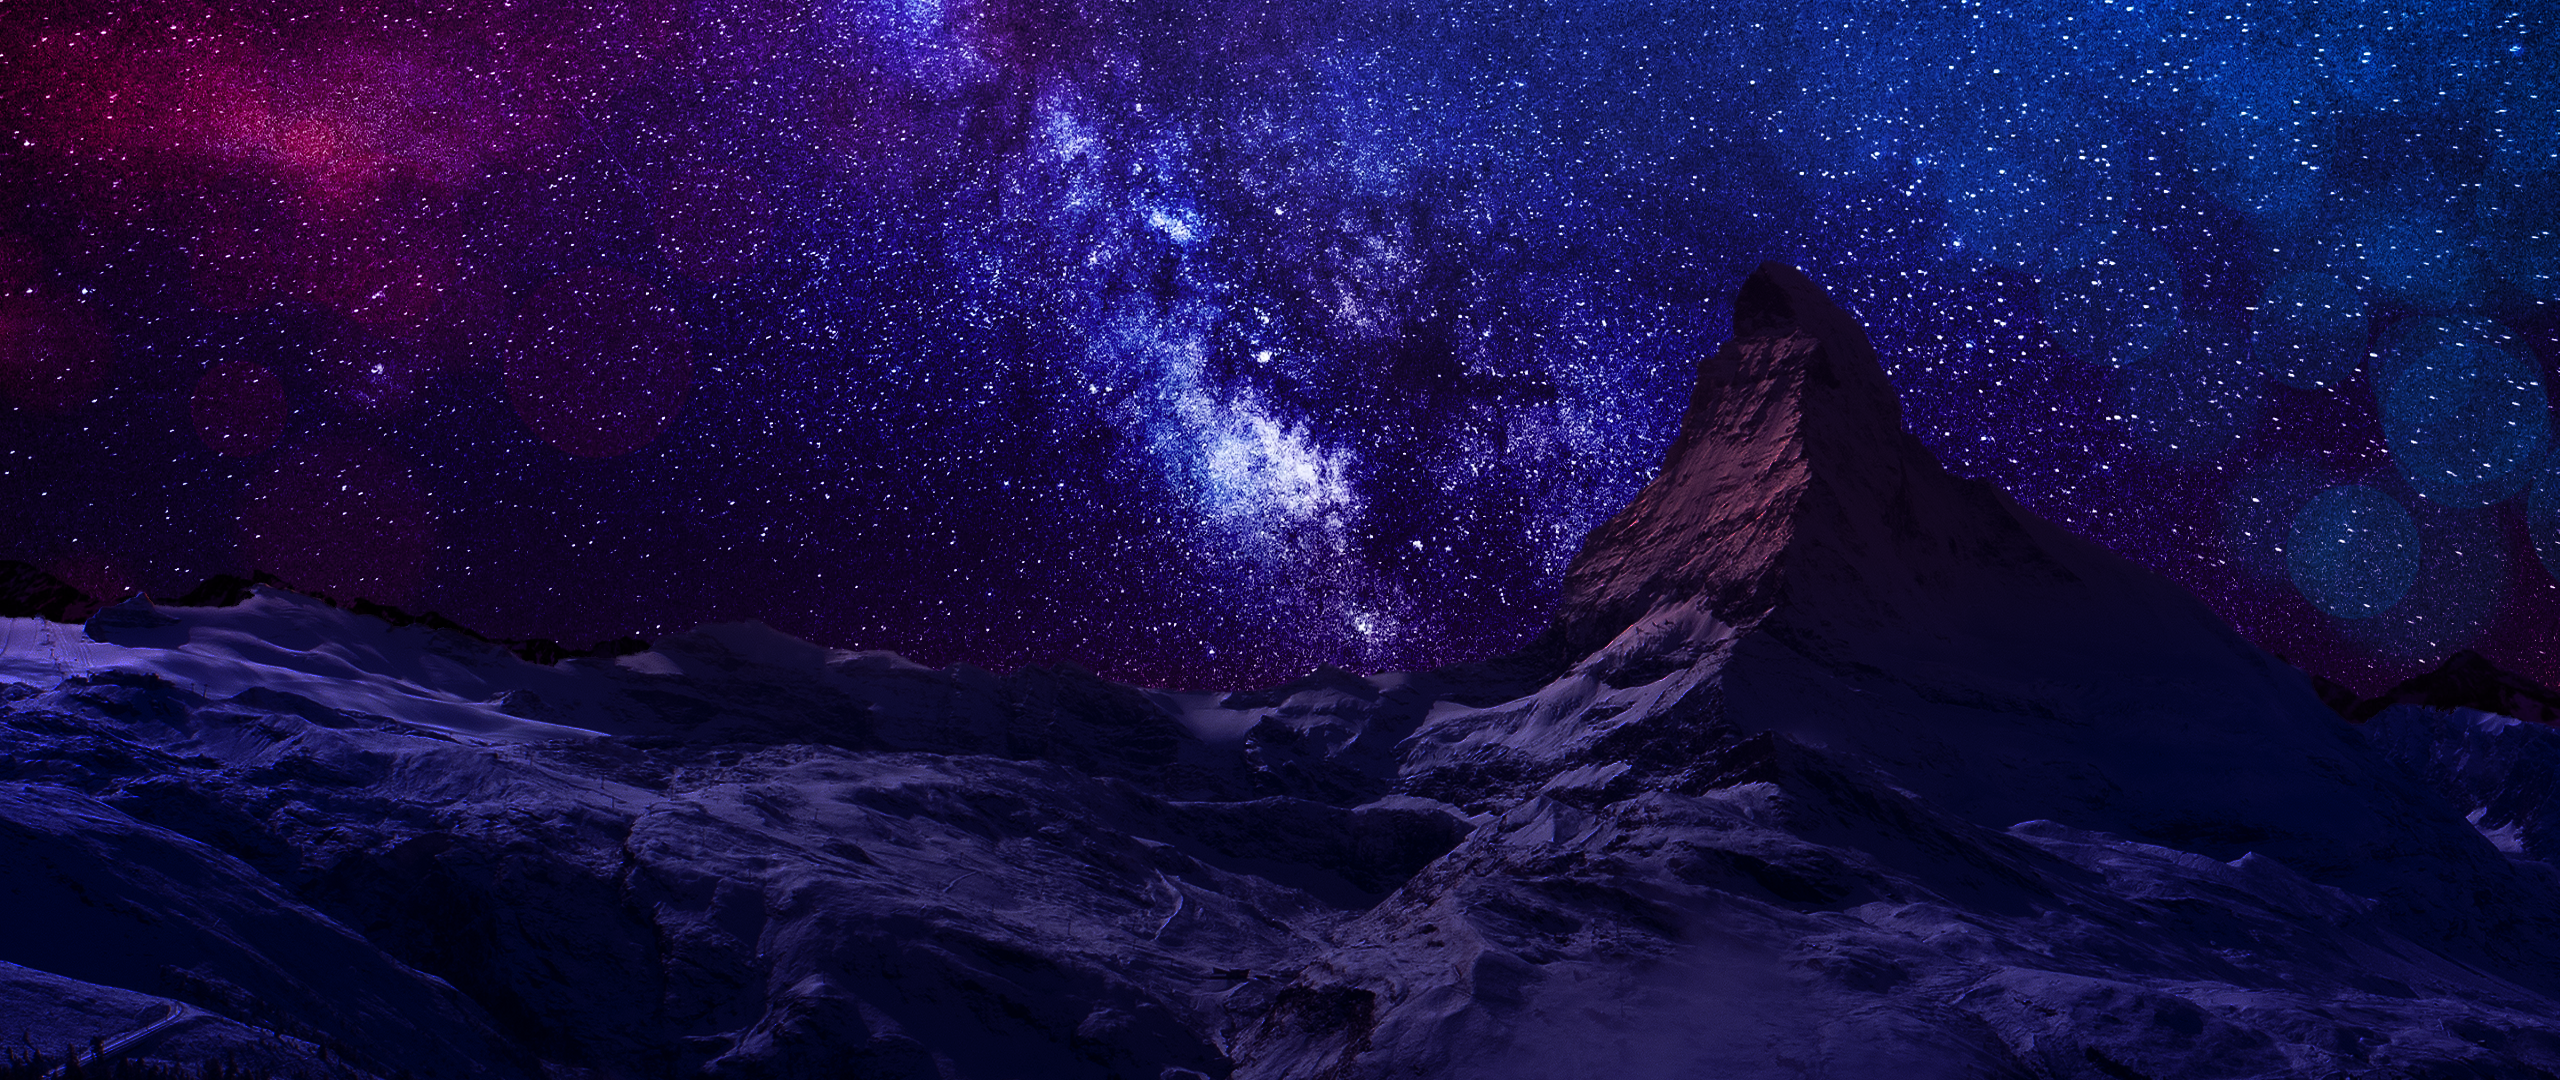 purple night full hd fondo de pantalla and fondo de